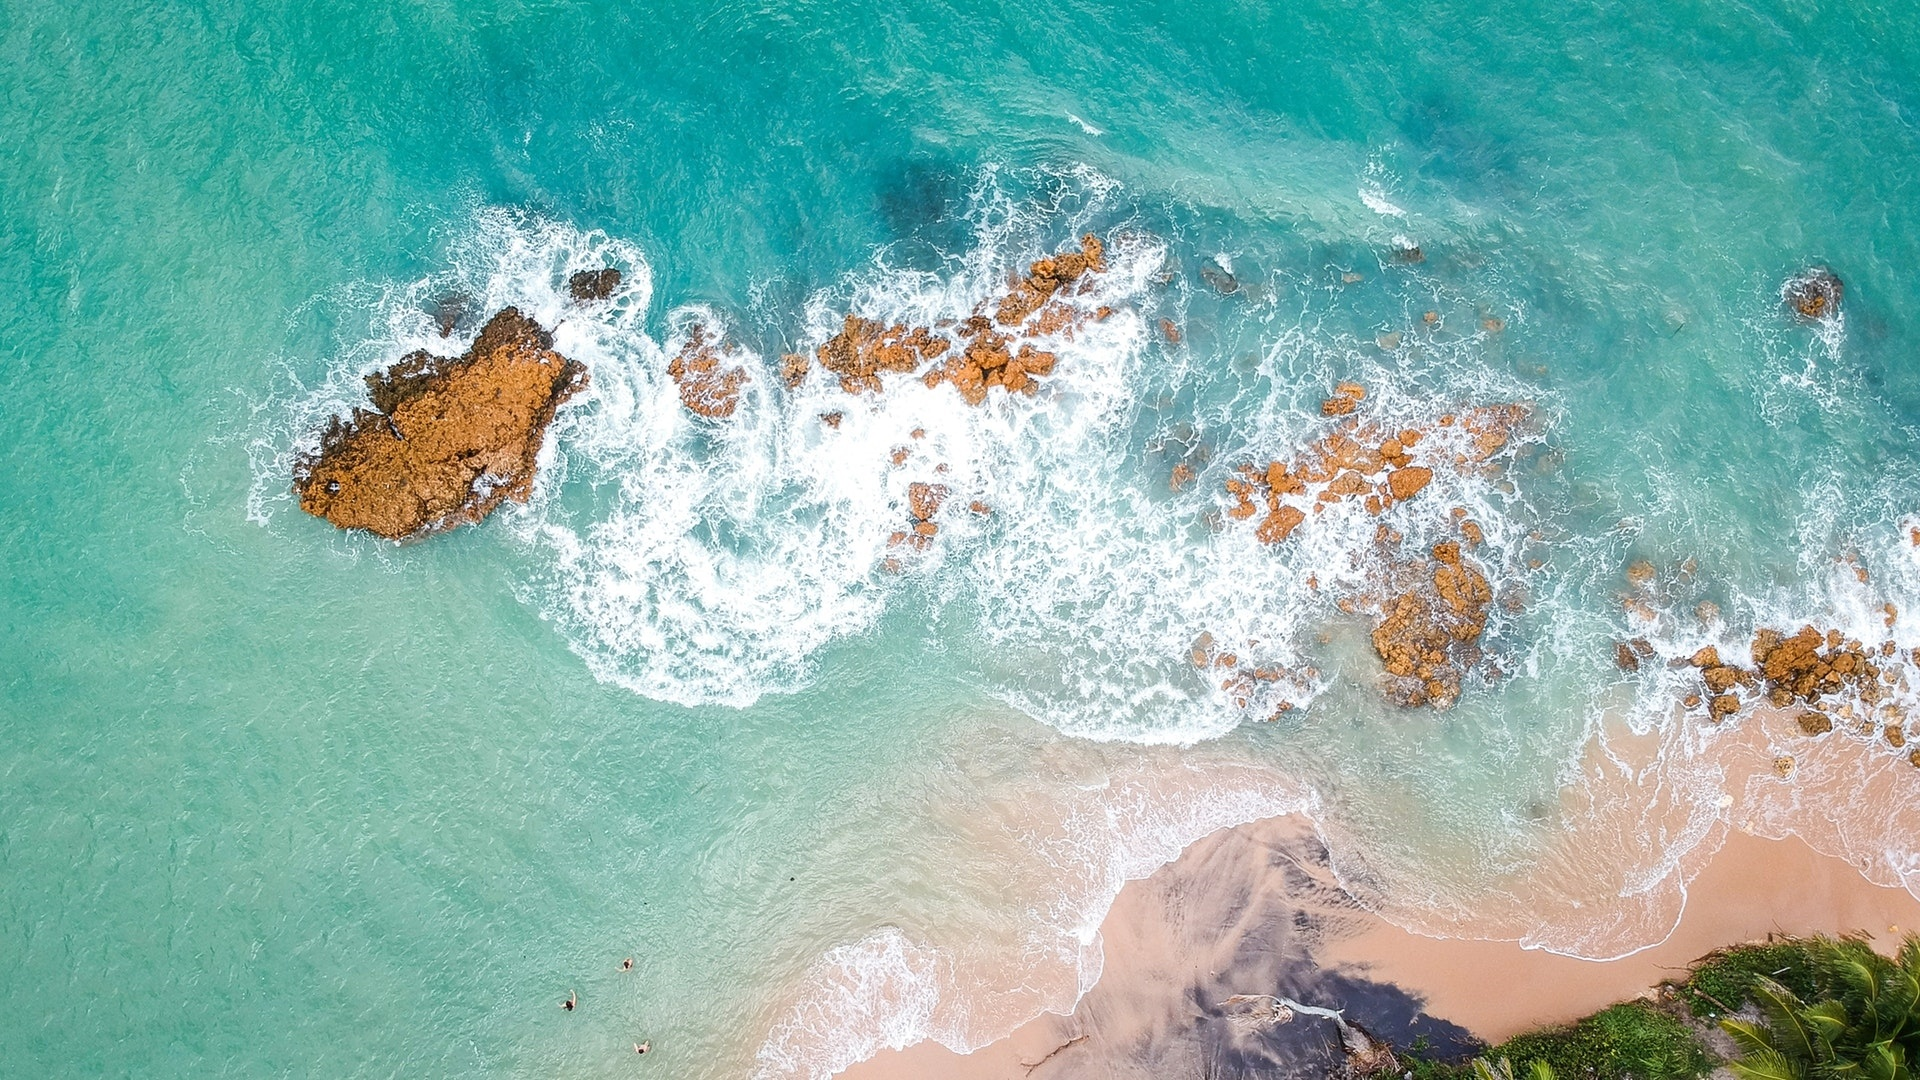 Sea and Sand From Above desktop wallpaper free download